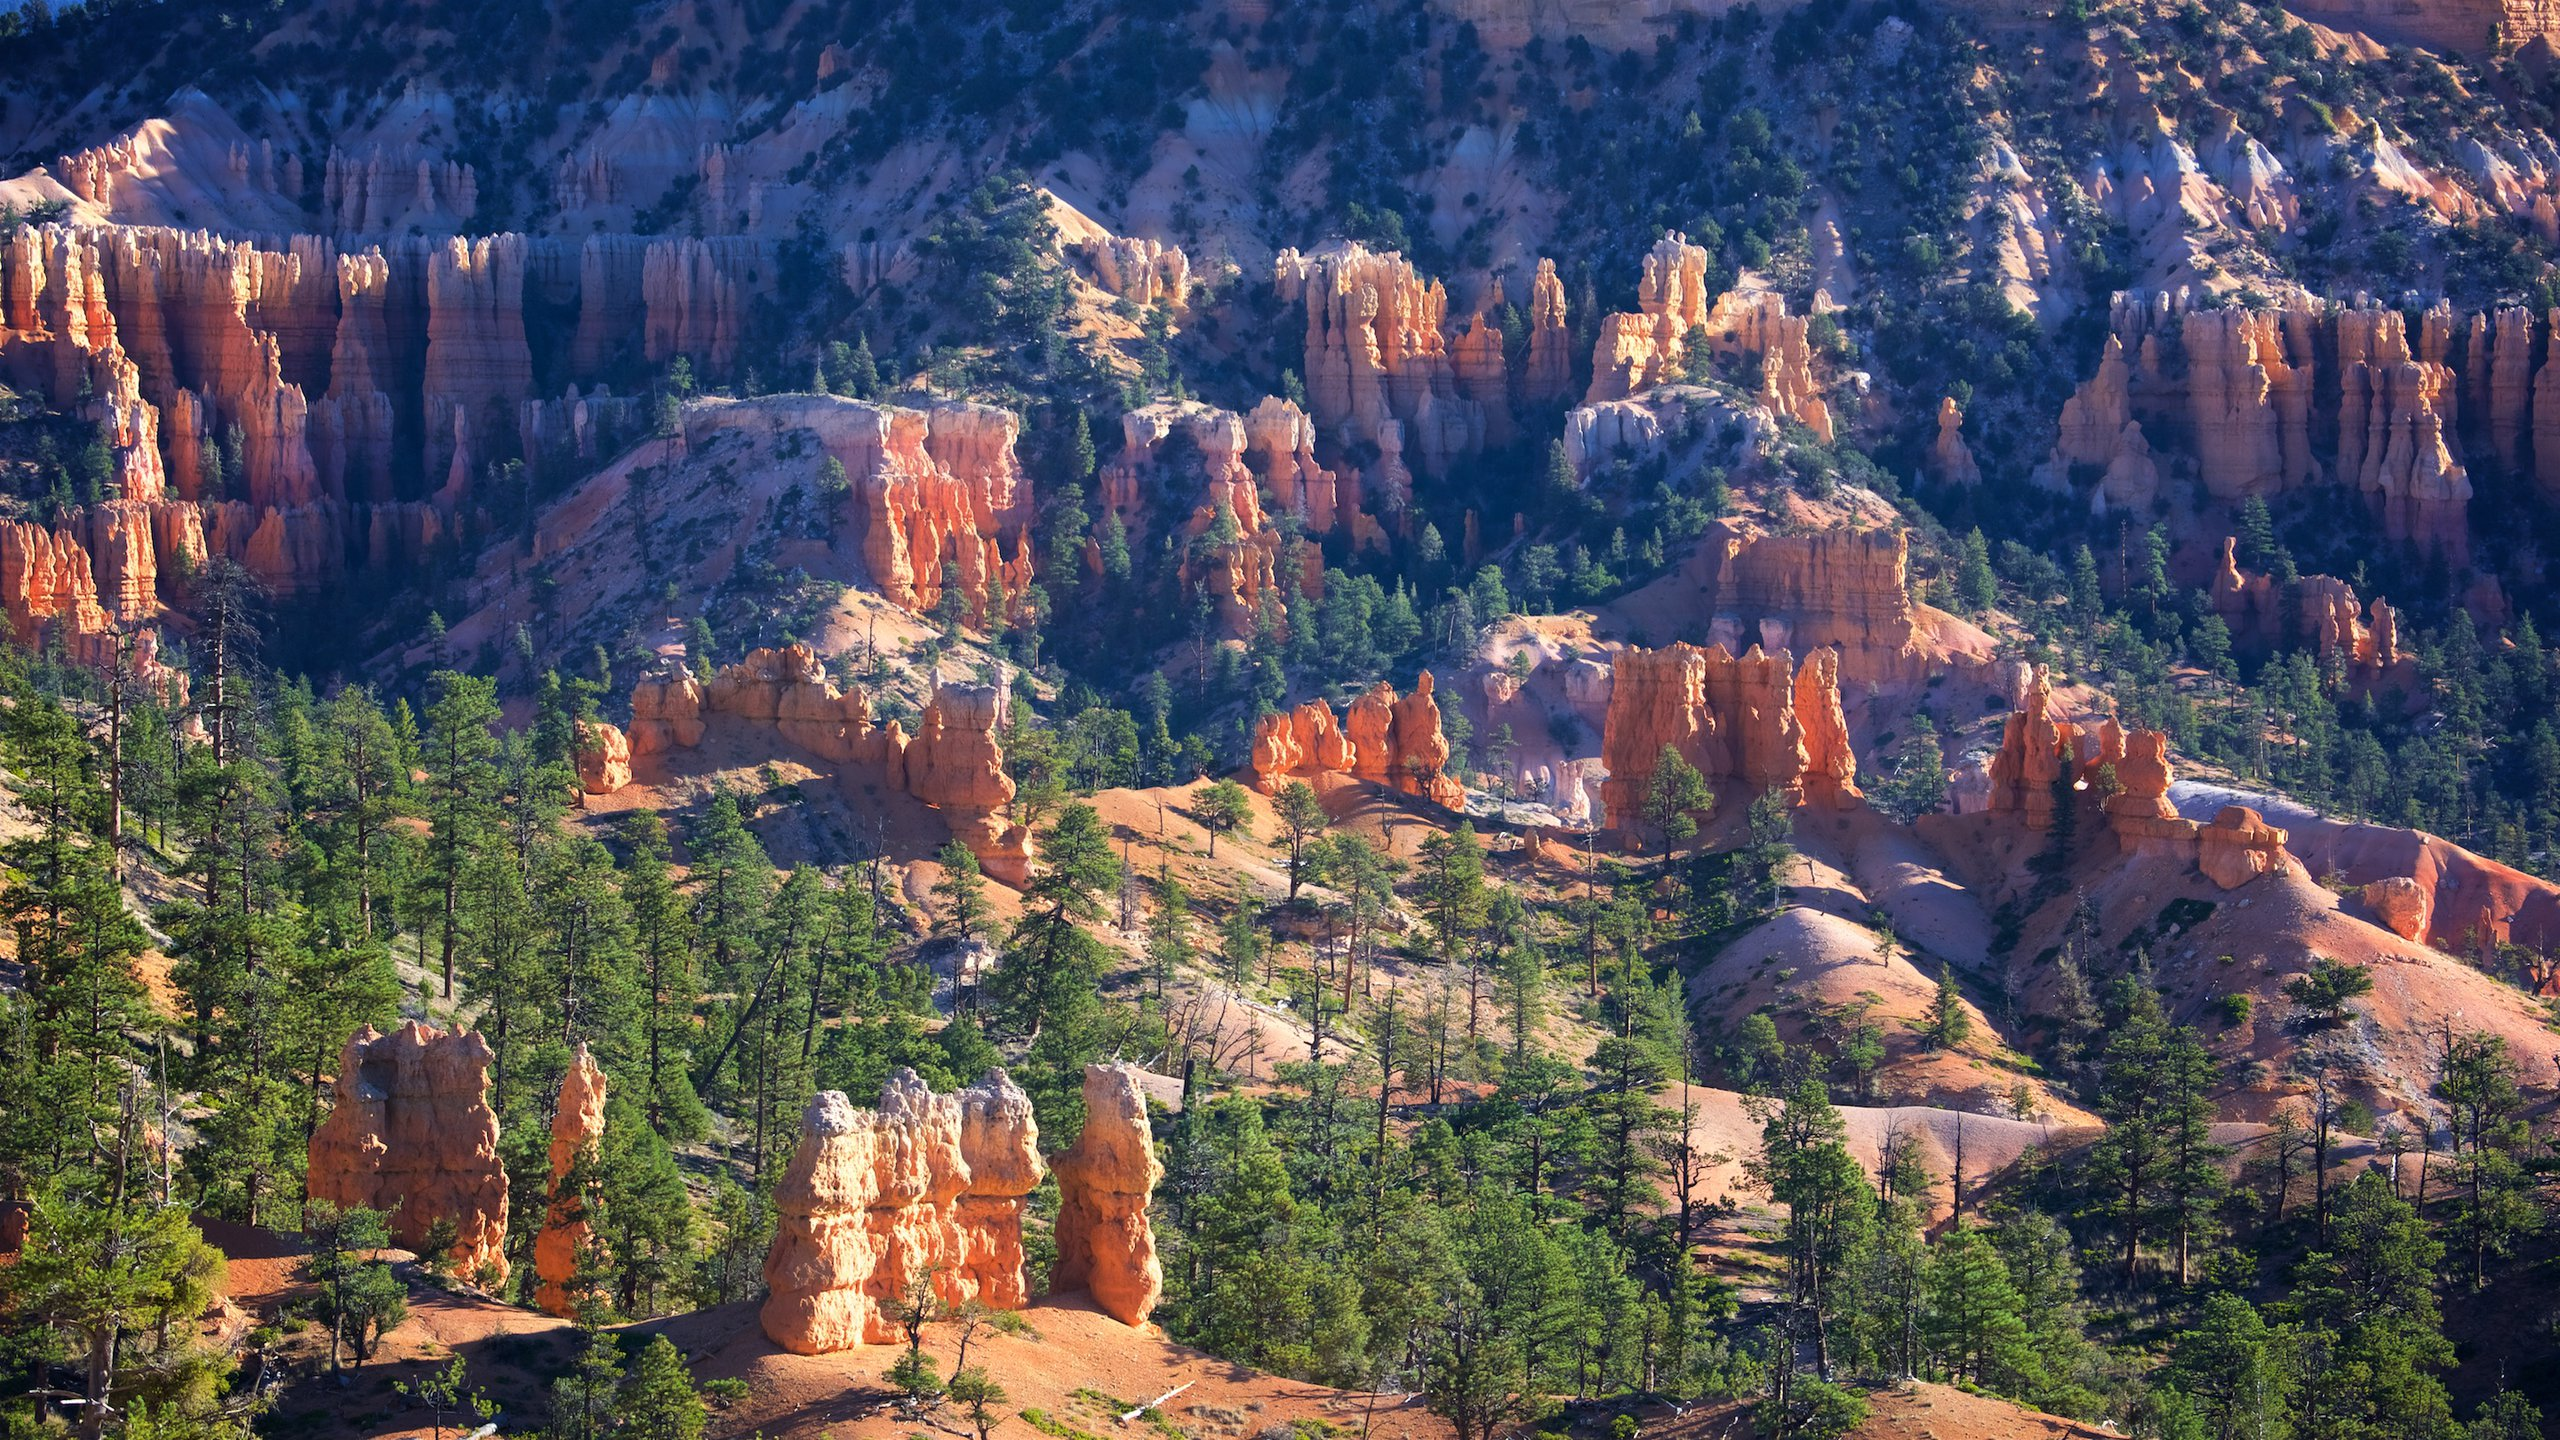 Embark on the Queens Garden Trail or watch the sun rising over Boat Mesa and the Sinking Ship from this favorite destination in Bryce Canyon.